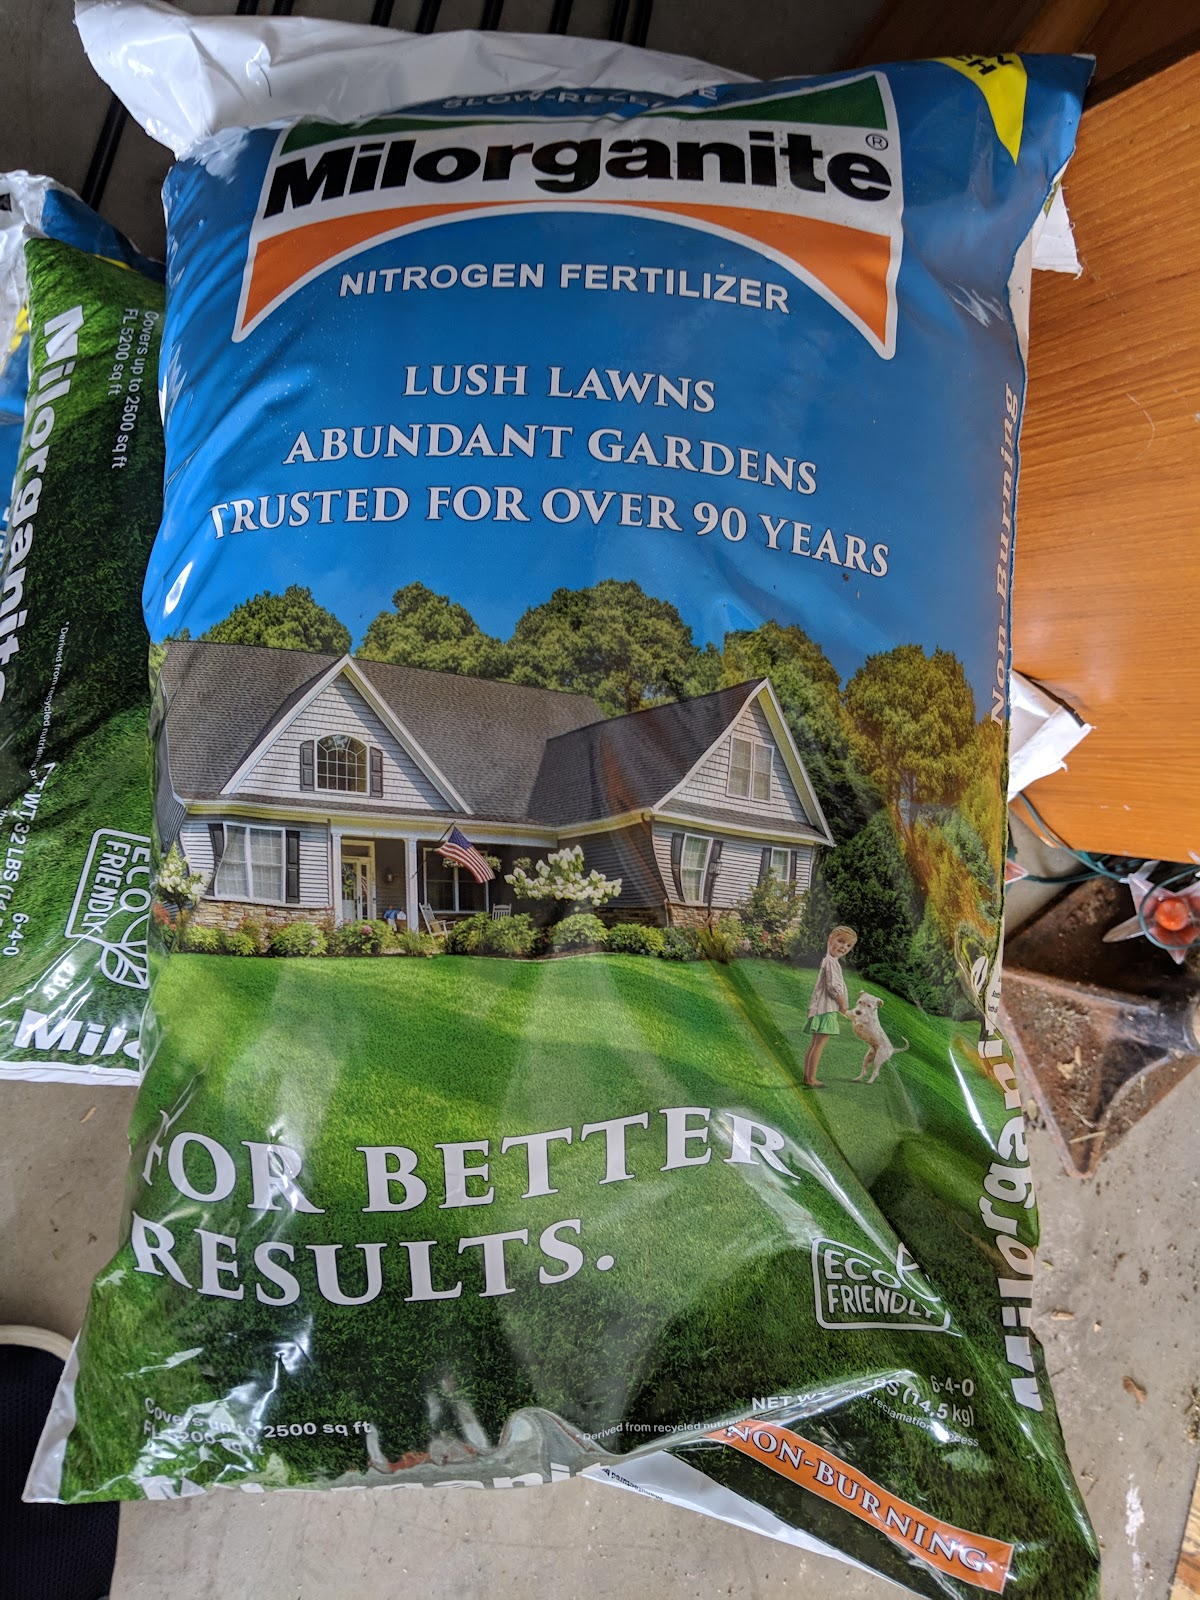 My First Season With Milorganite - Problems Already?